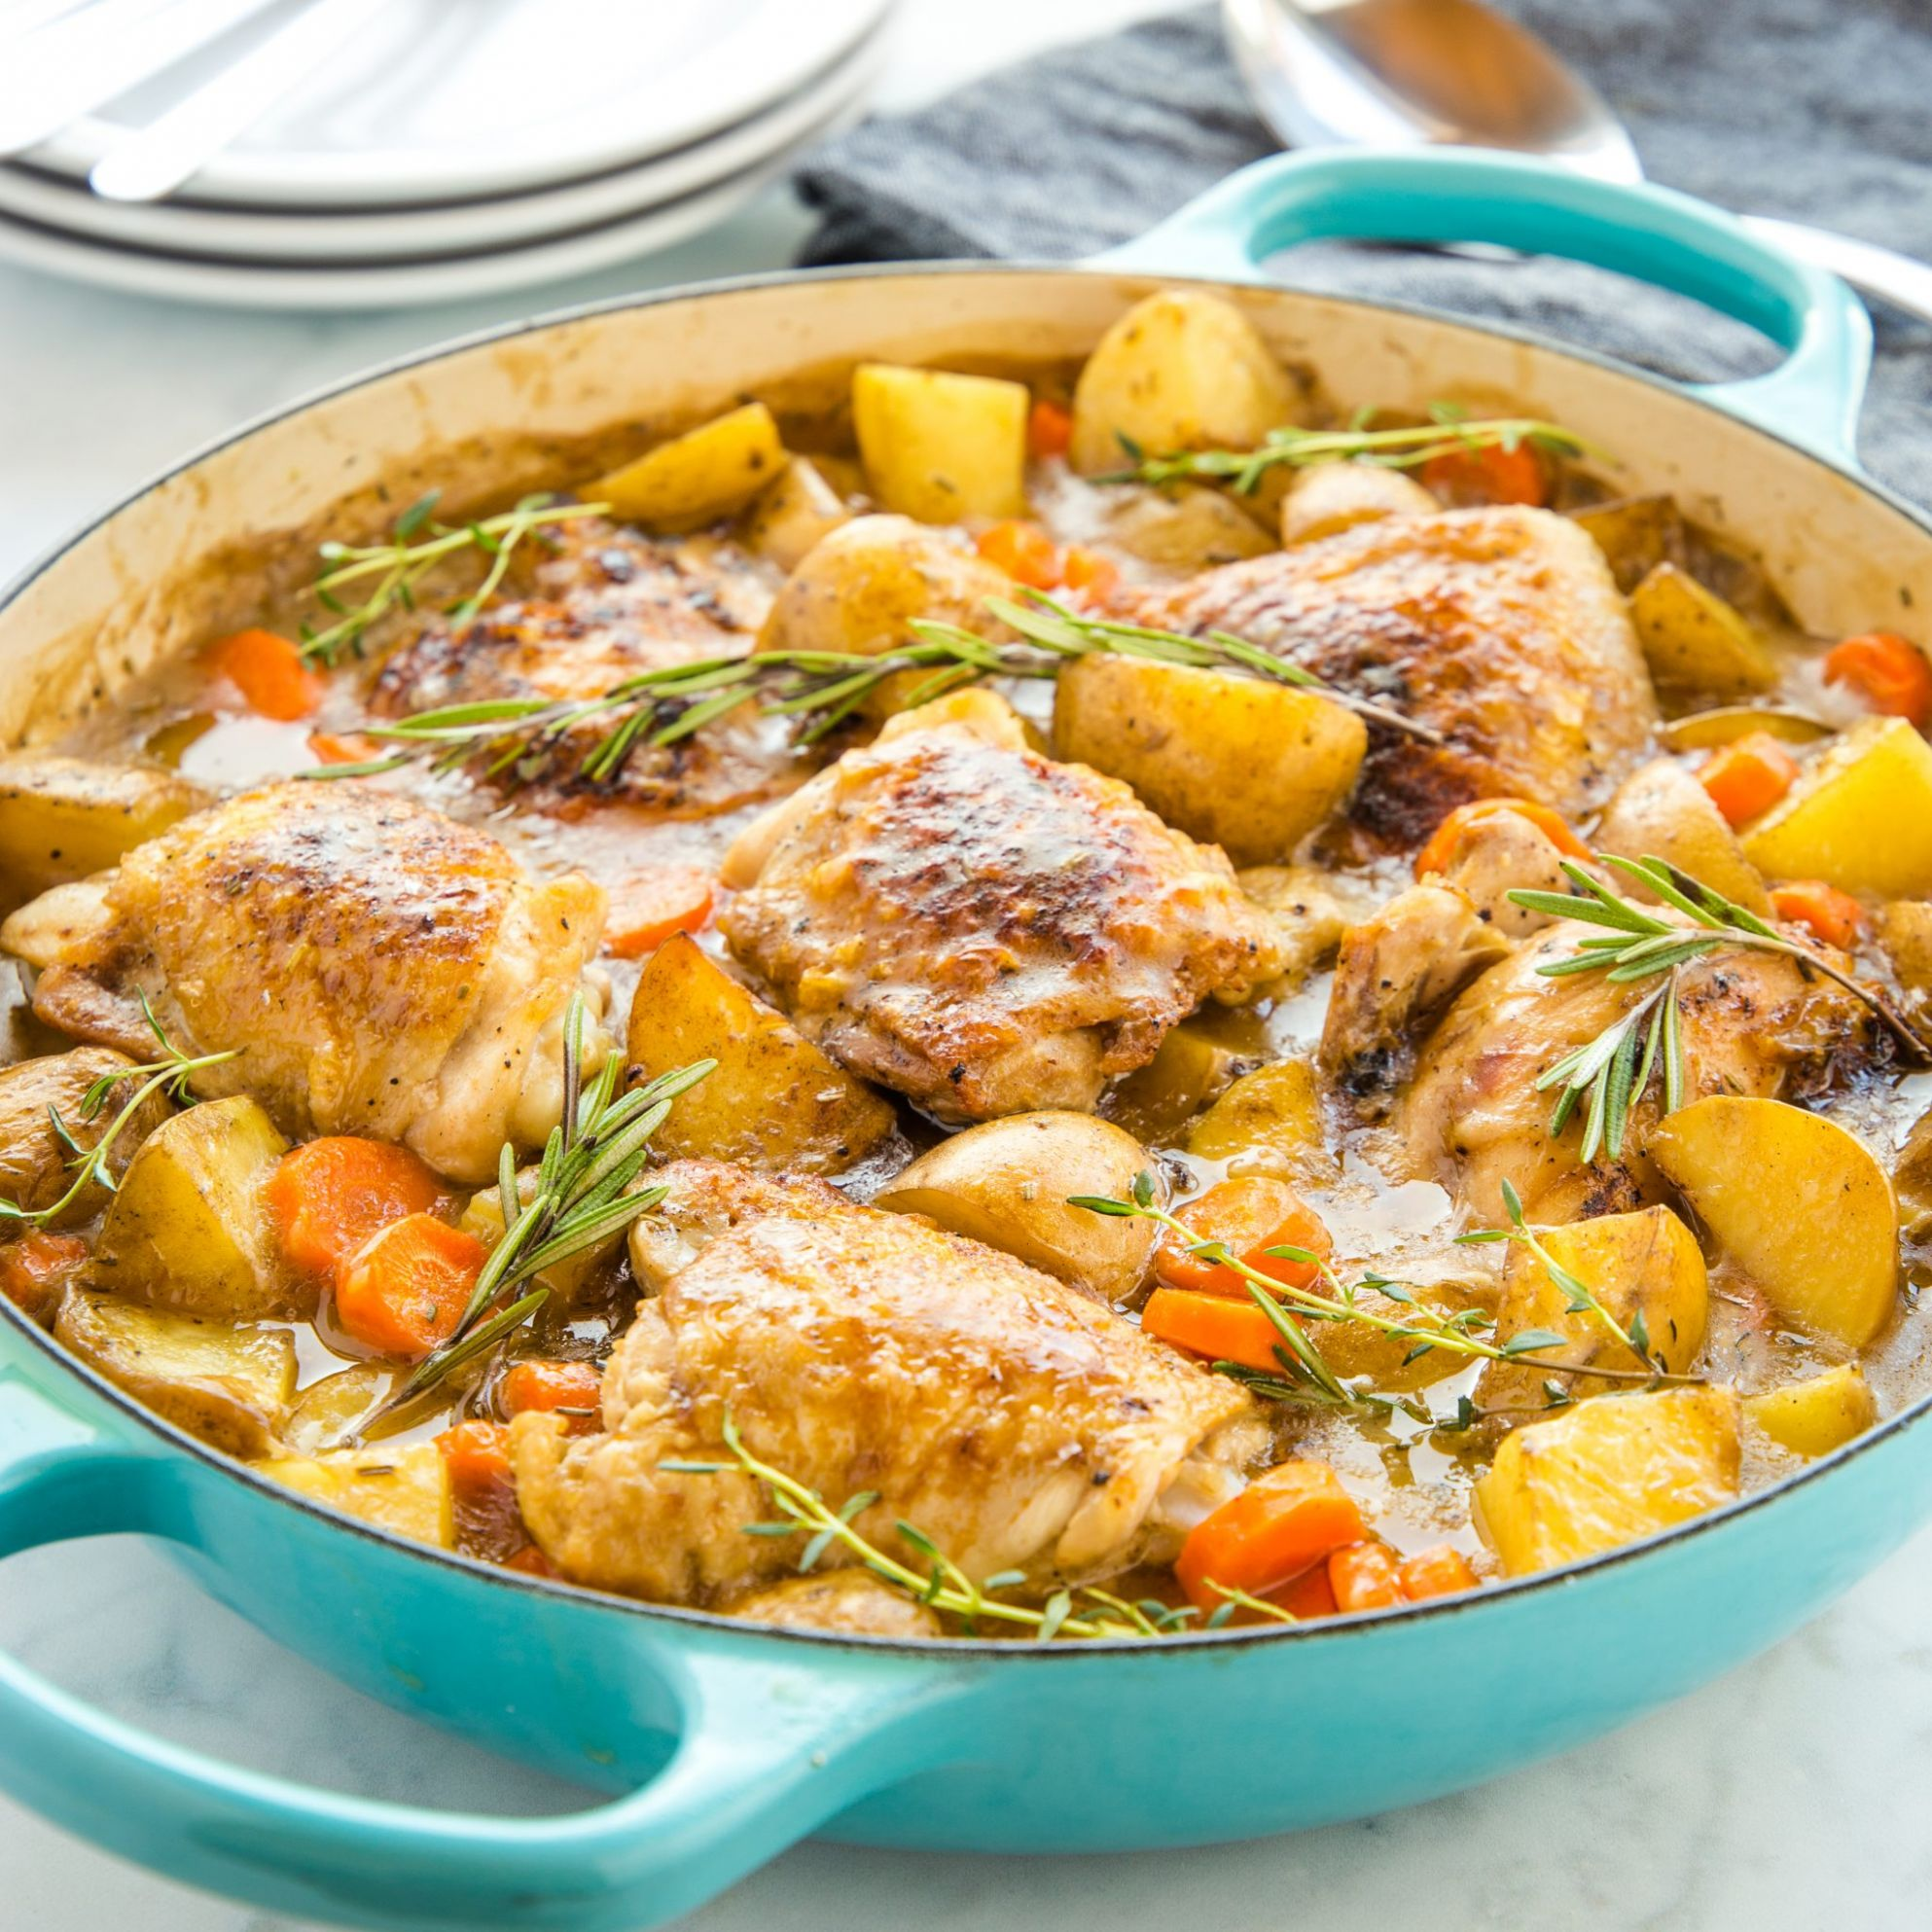 Easy One Pot Roasted Chicken Dinner - Recipes Cooking For One